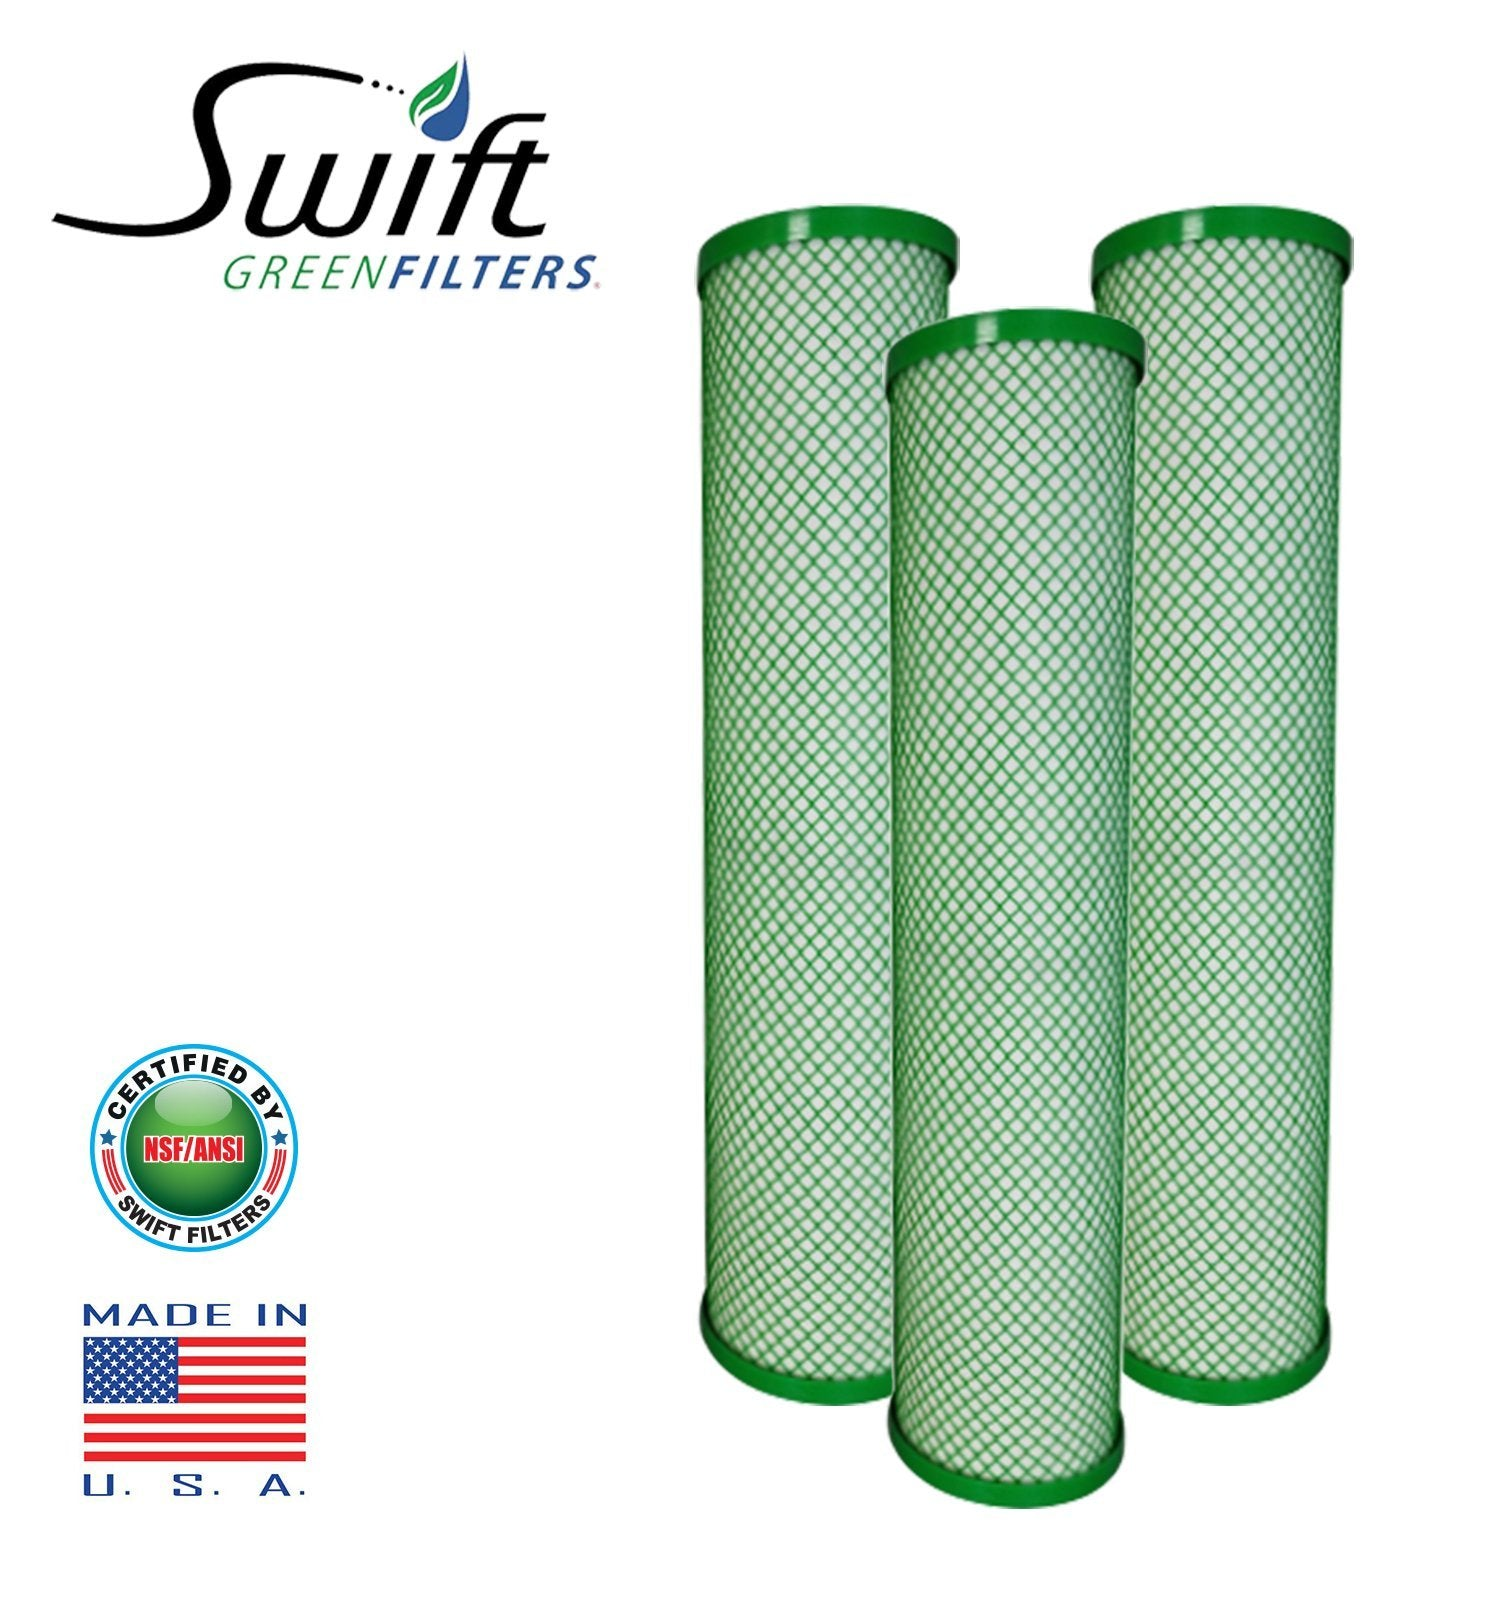 "Swift (SGFB10Pb1) Replaces Filtrex FXB10PB1 9.75""x 4.5"" LEAD/CYST Green Block Carbon 1 Micron Filter - The Filters Club"